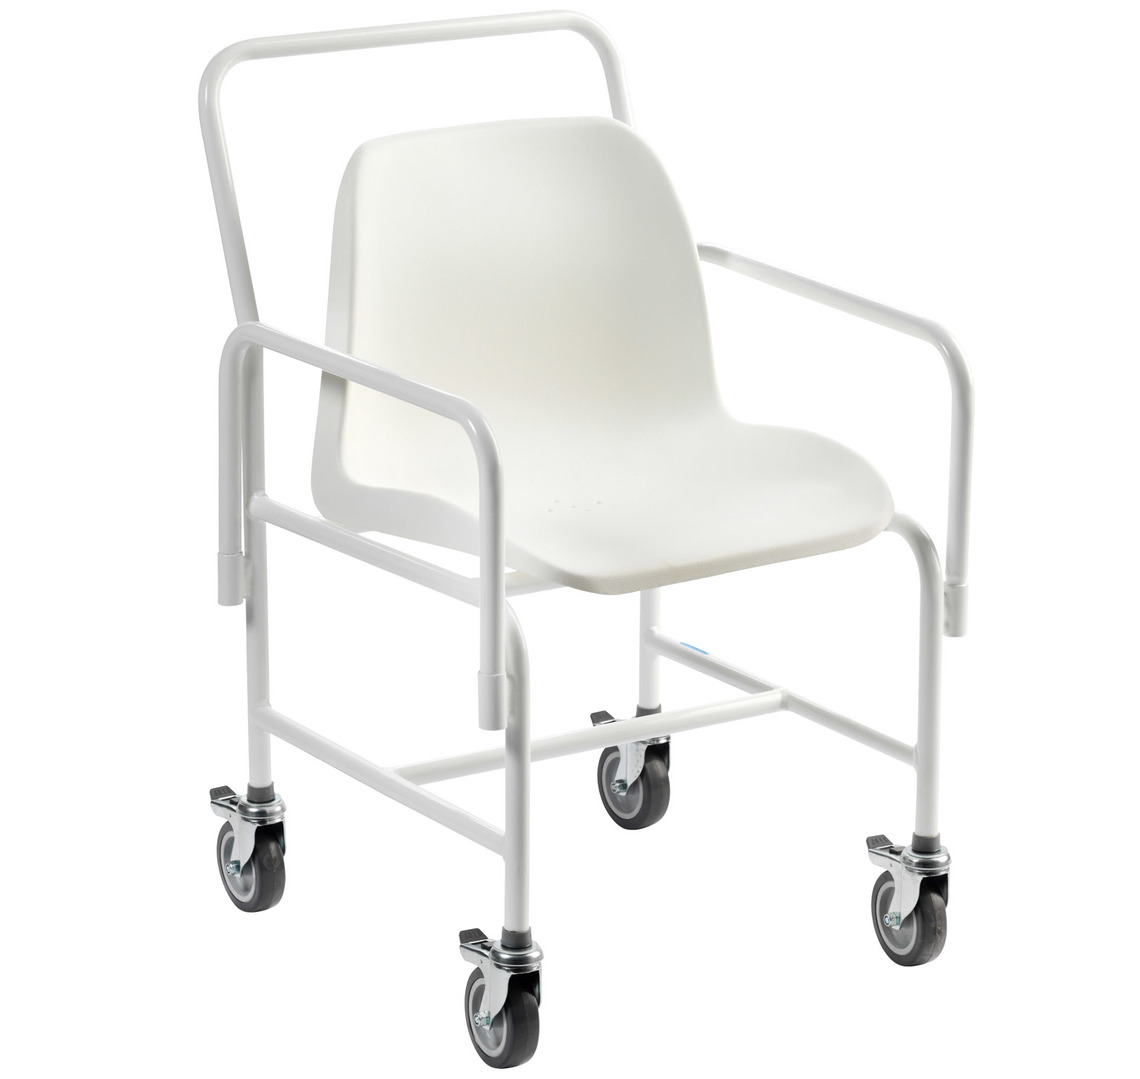 Hallaton Mobile Shower Chair at Low Prices ! UK Wheelchairs